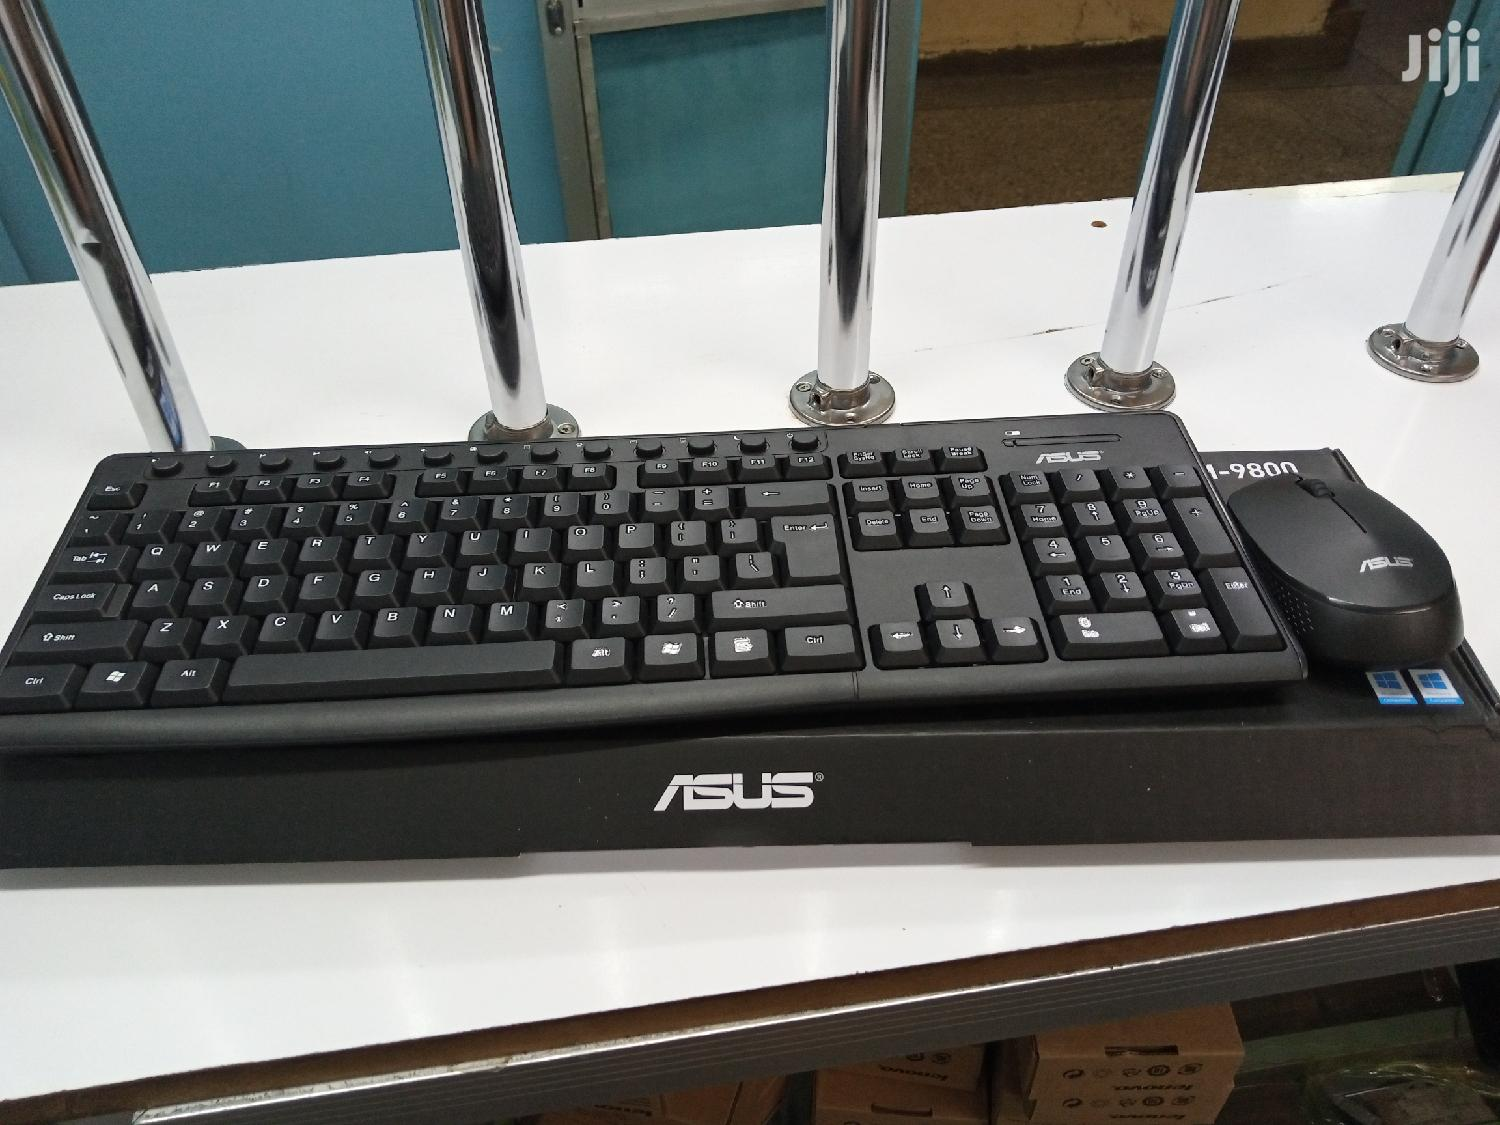 Km-9800 ASUS Keyboard and Mouse